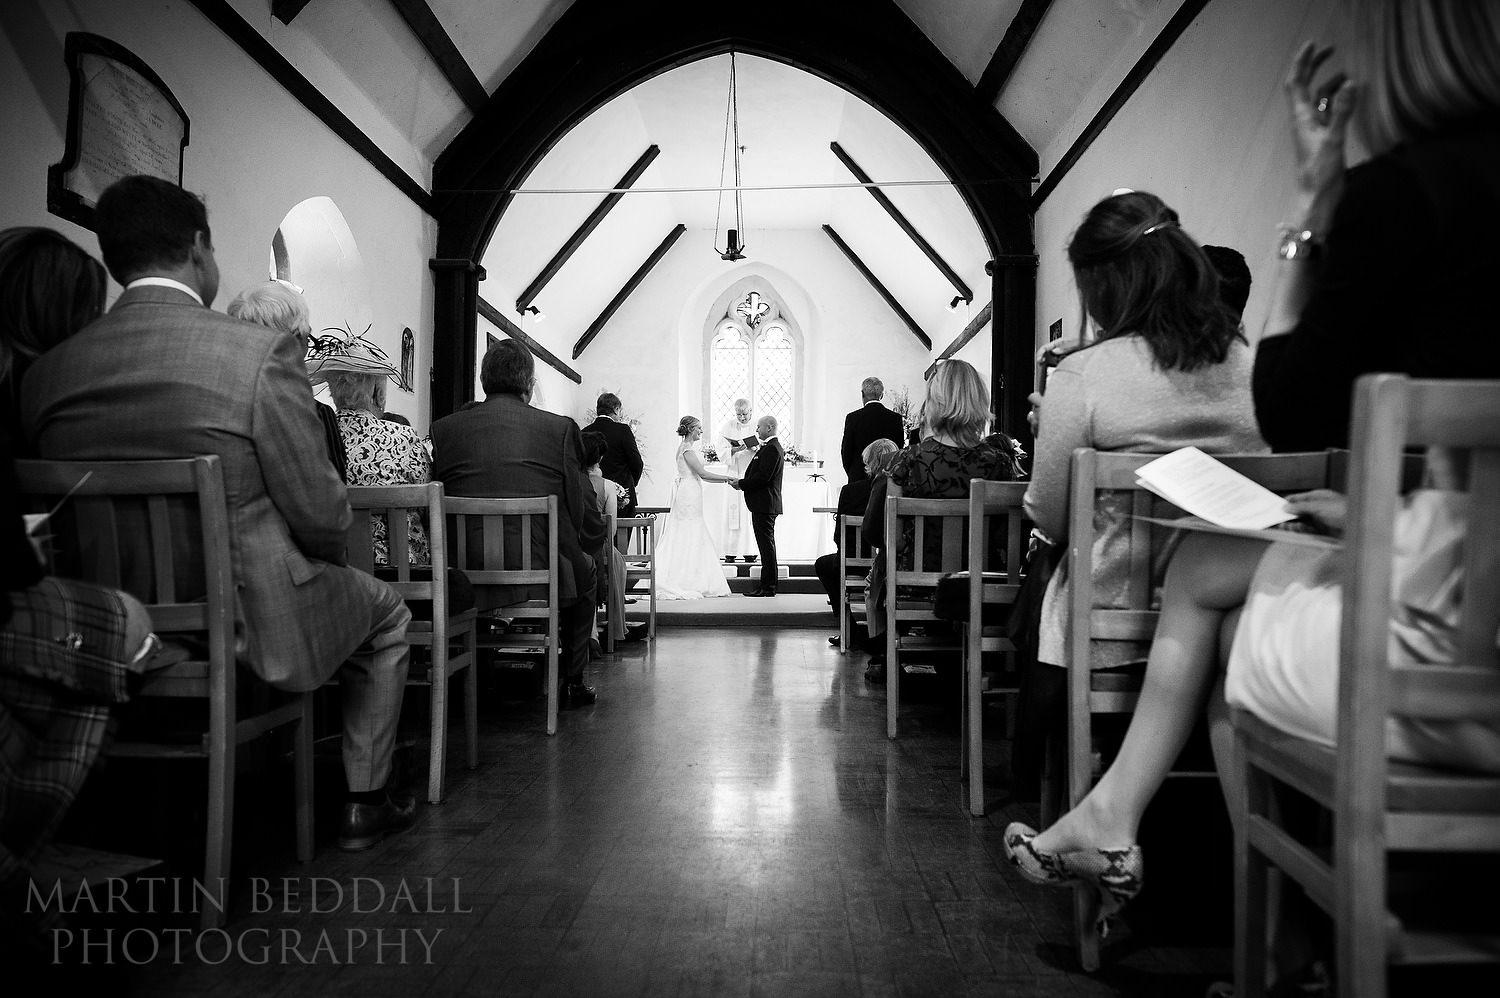 Wedding ceremony at Earnley church in Sussex